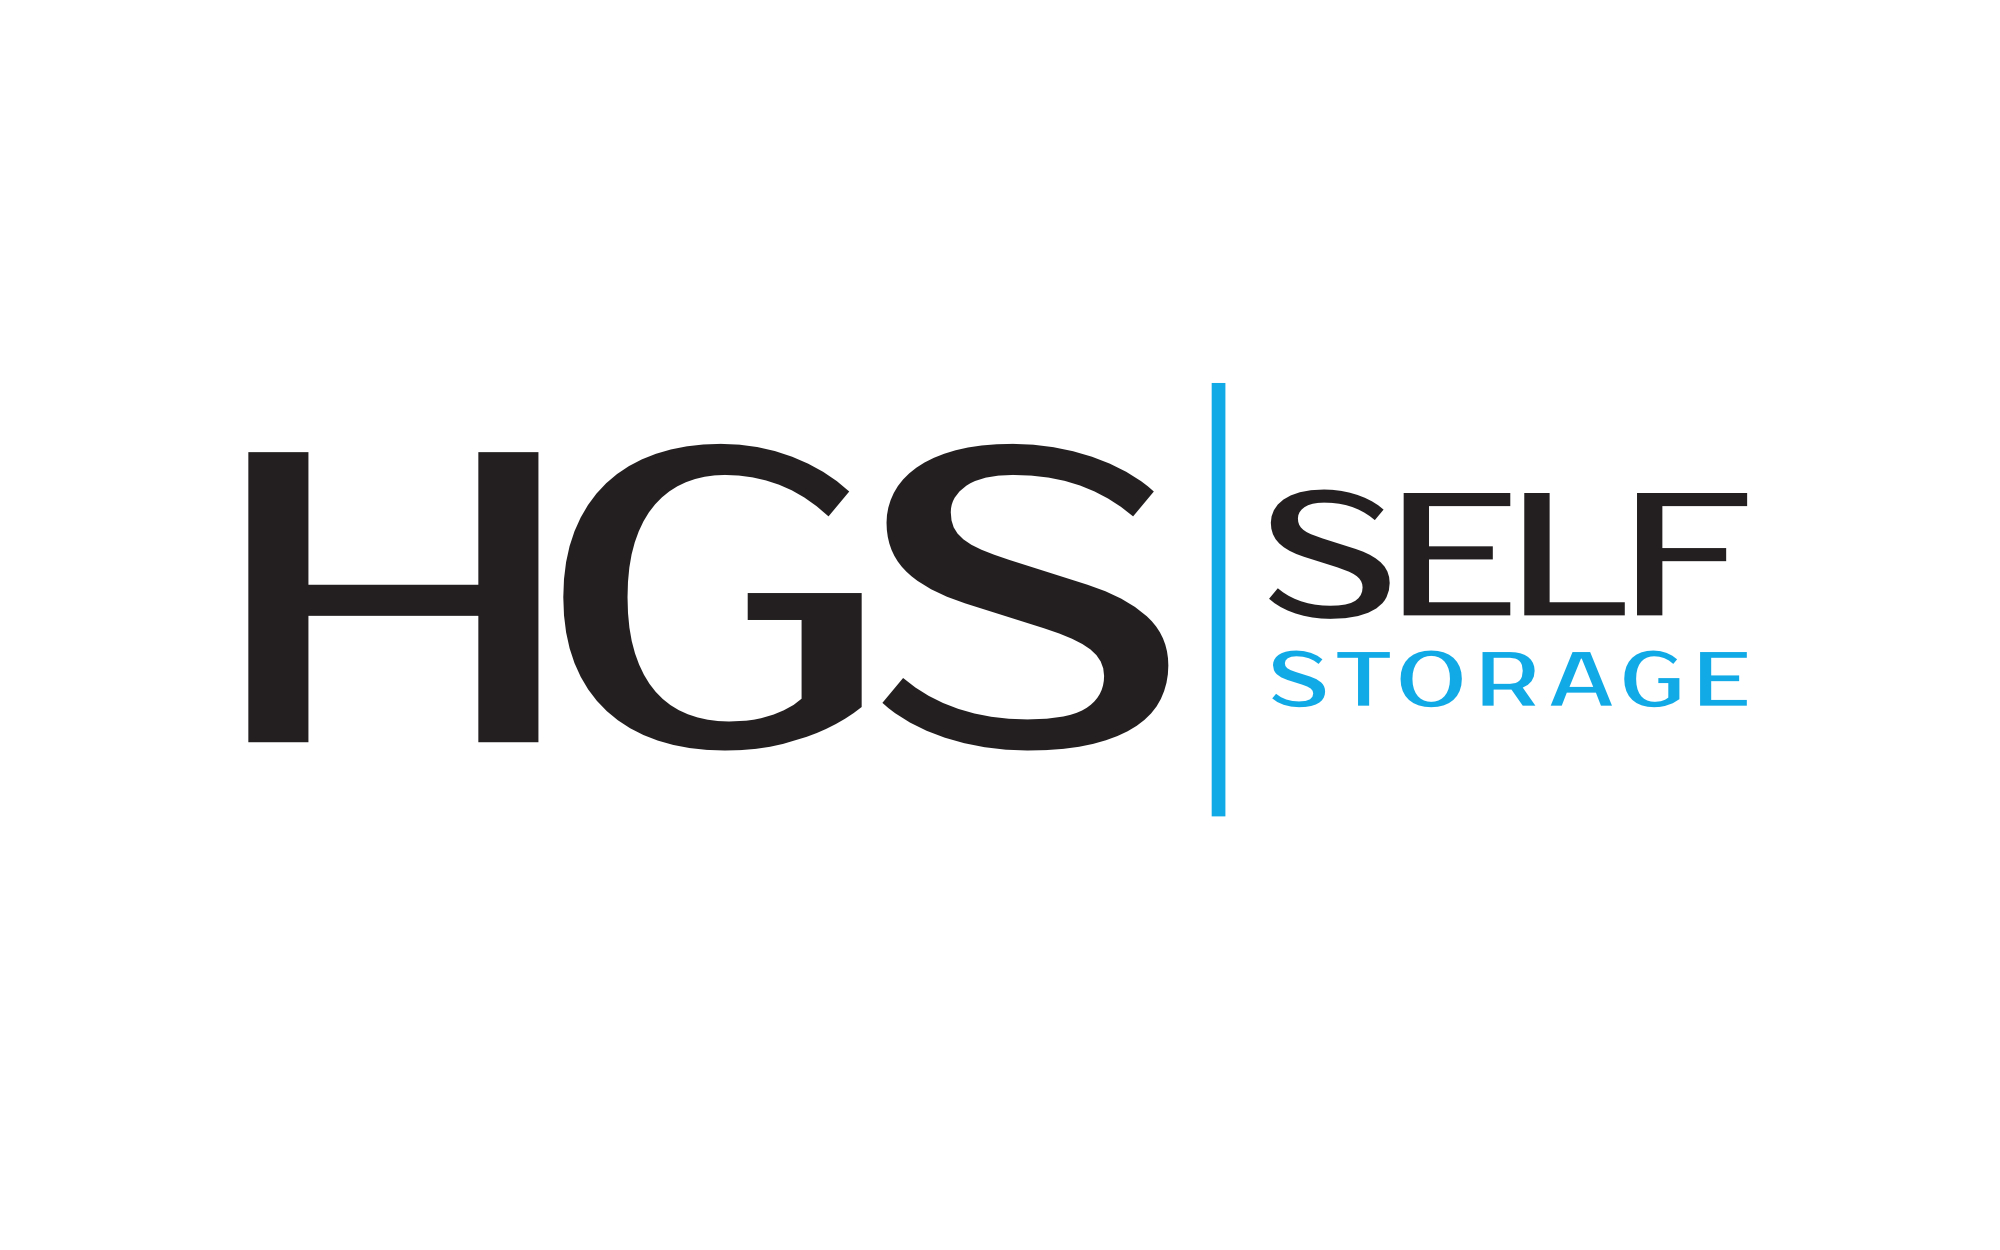 Logo Services Products A Member Of The Texas Self Storage Ociation Hgs Is Committed To Providing Quality Units And Parking